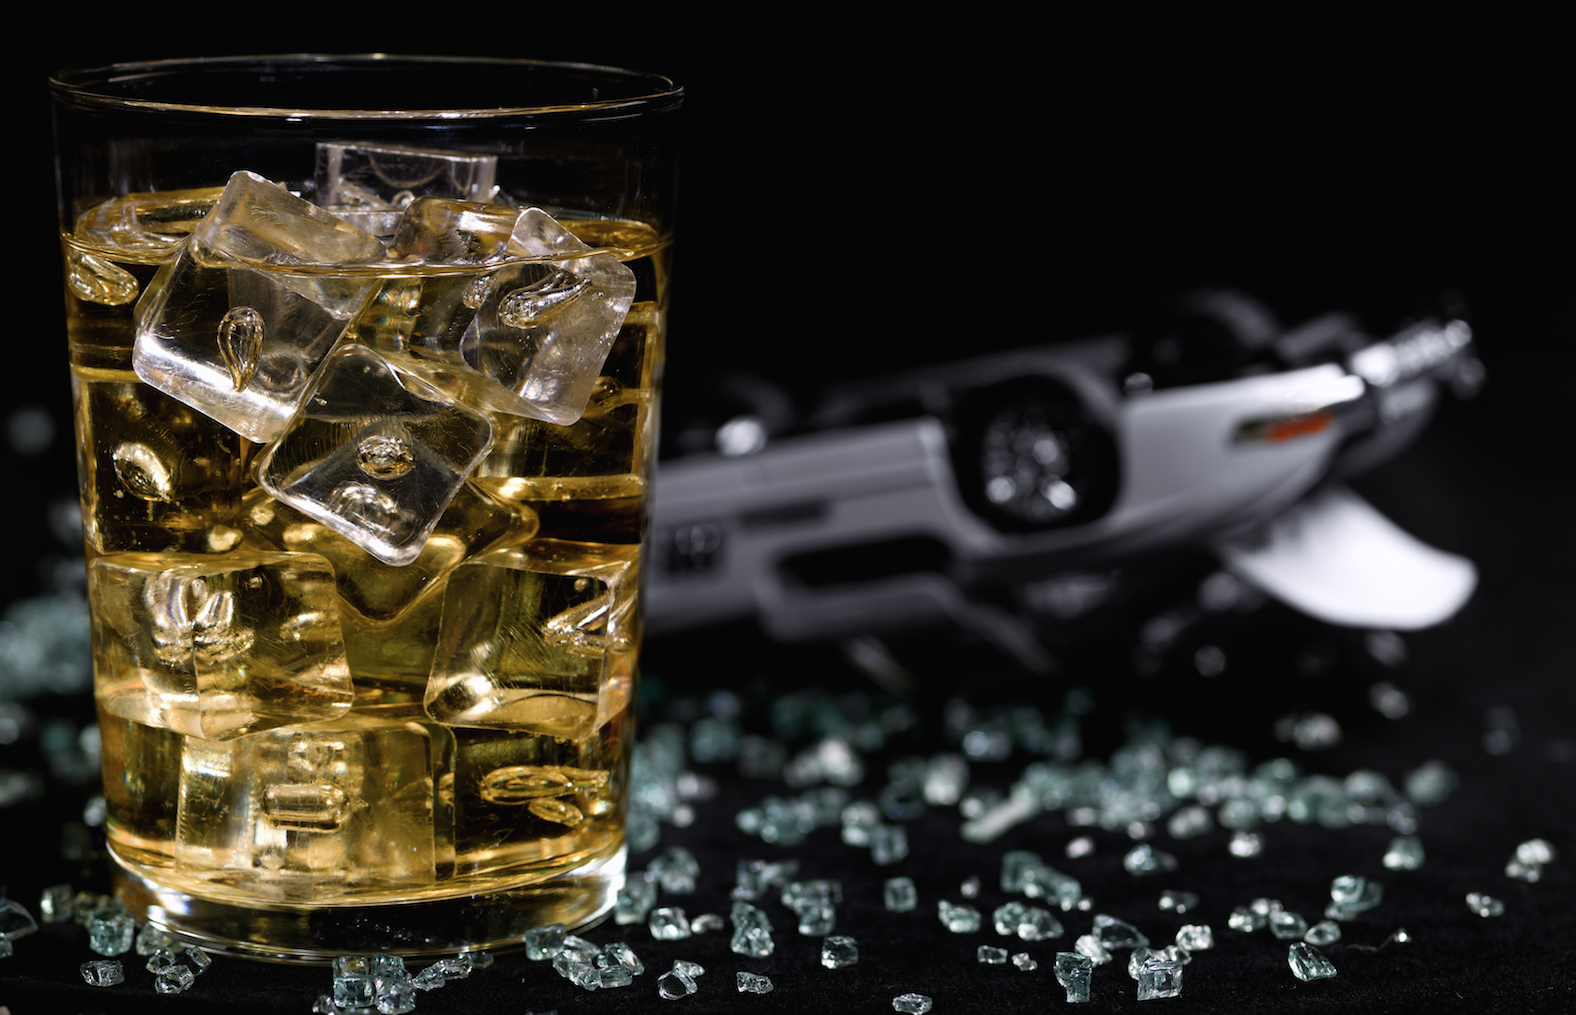 Illinois drunk driving attorney